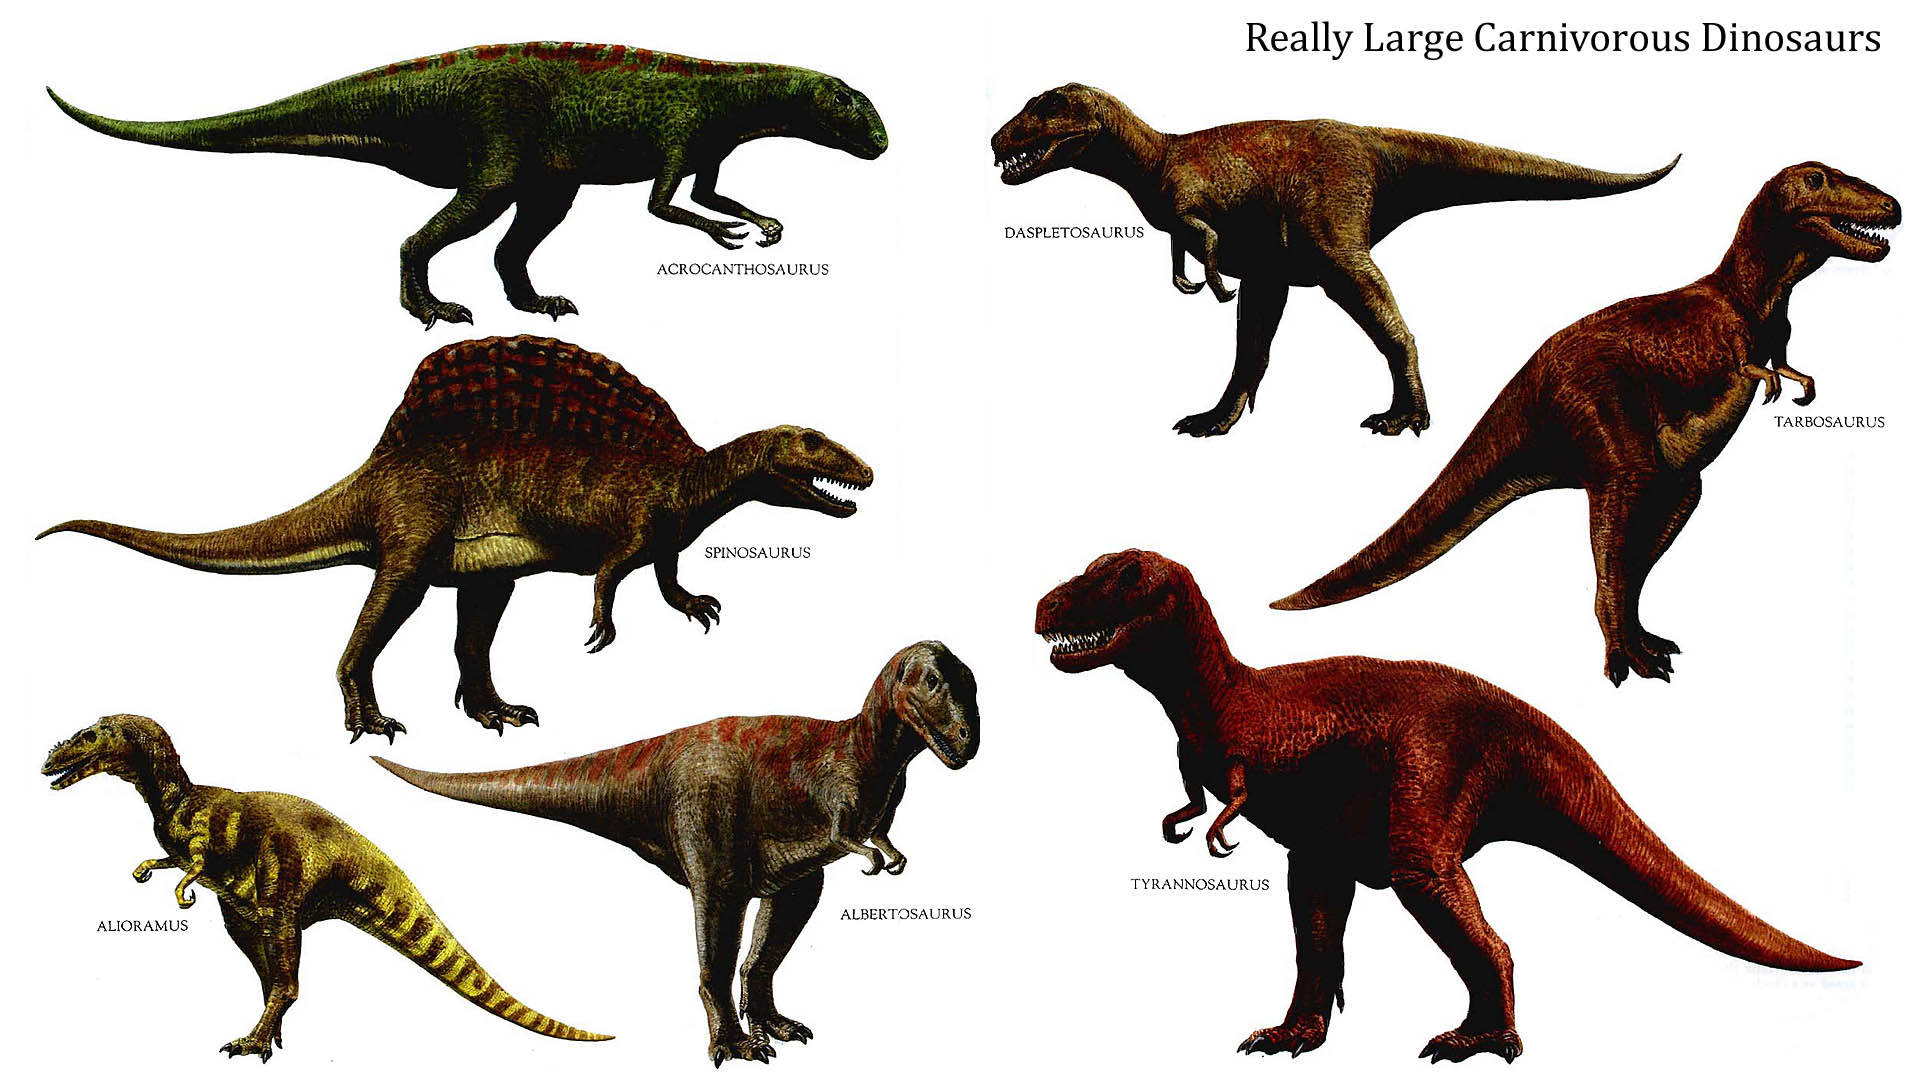 Really Large Carnivorous Dinosaurs